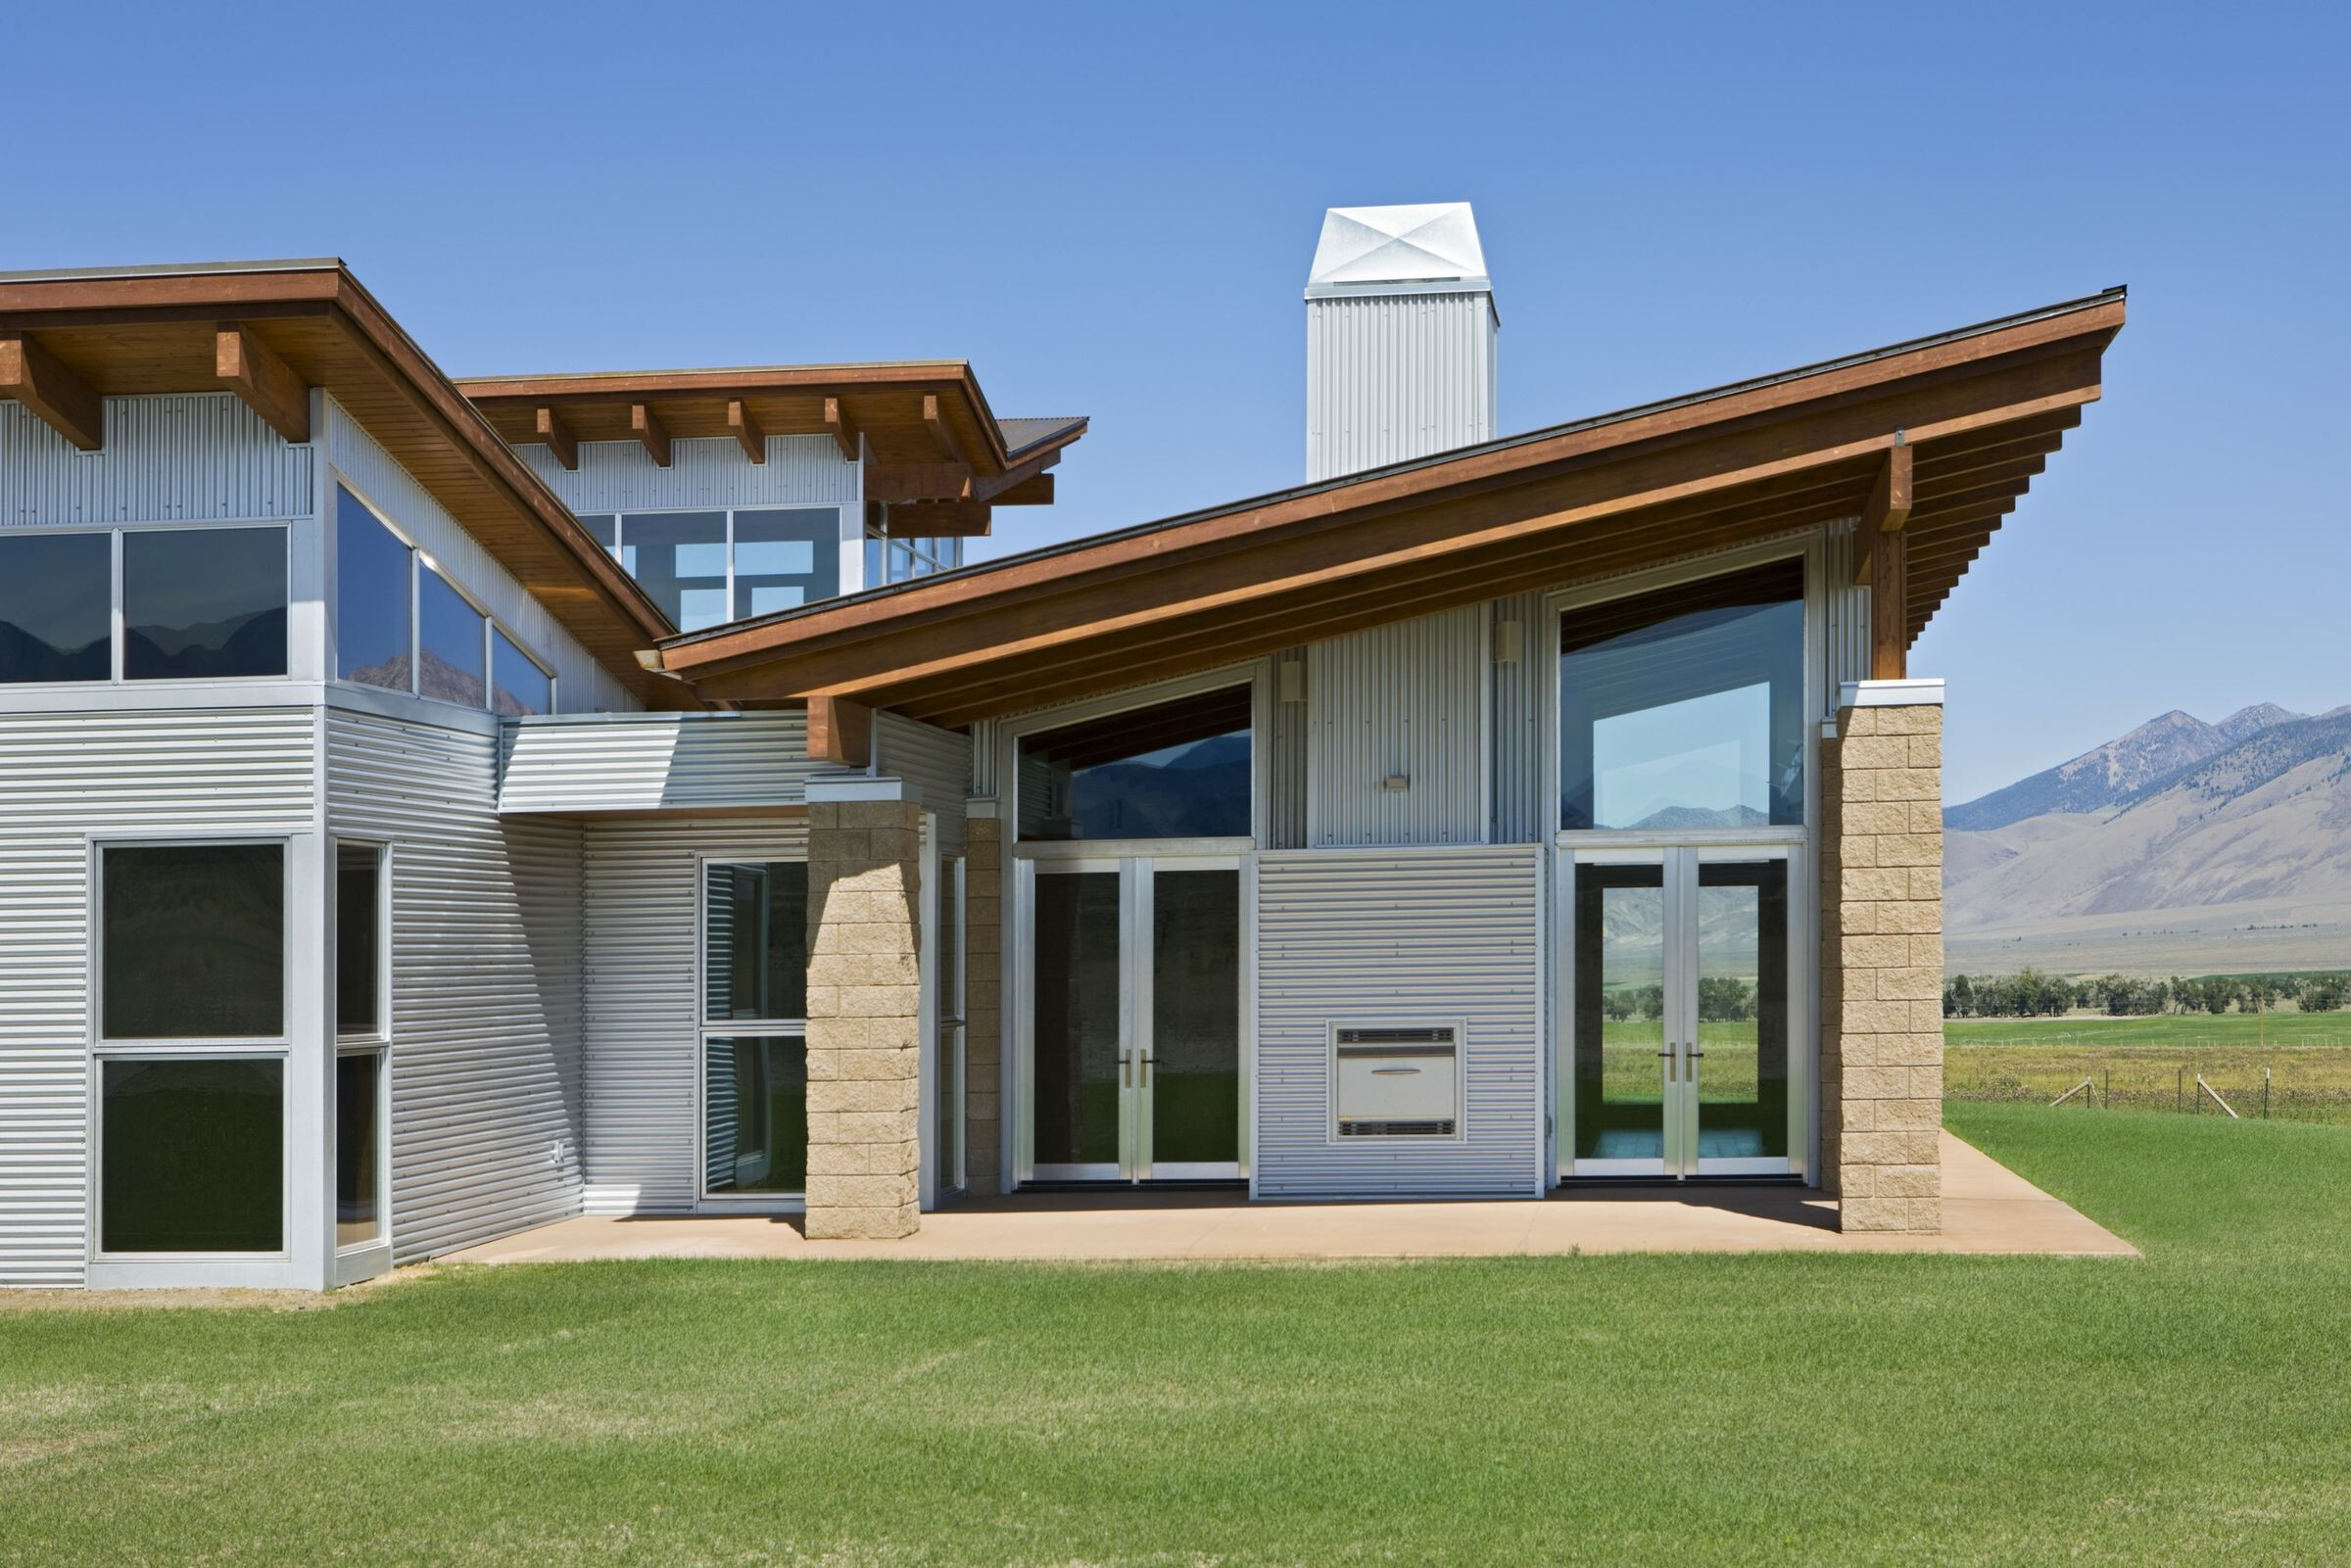 Double Helix Ranch